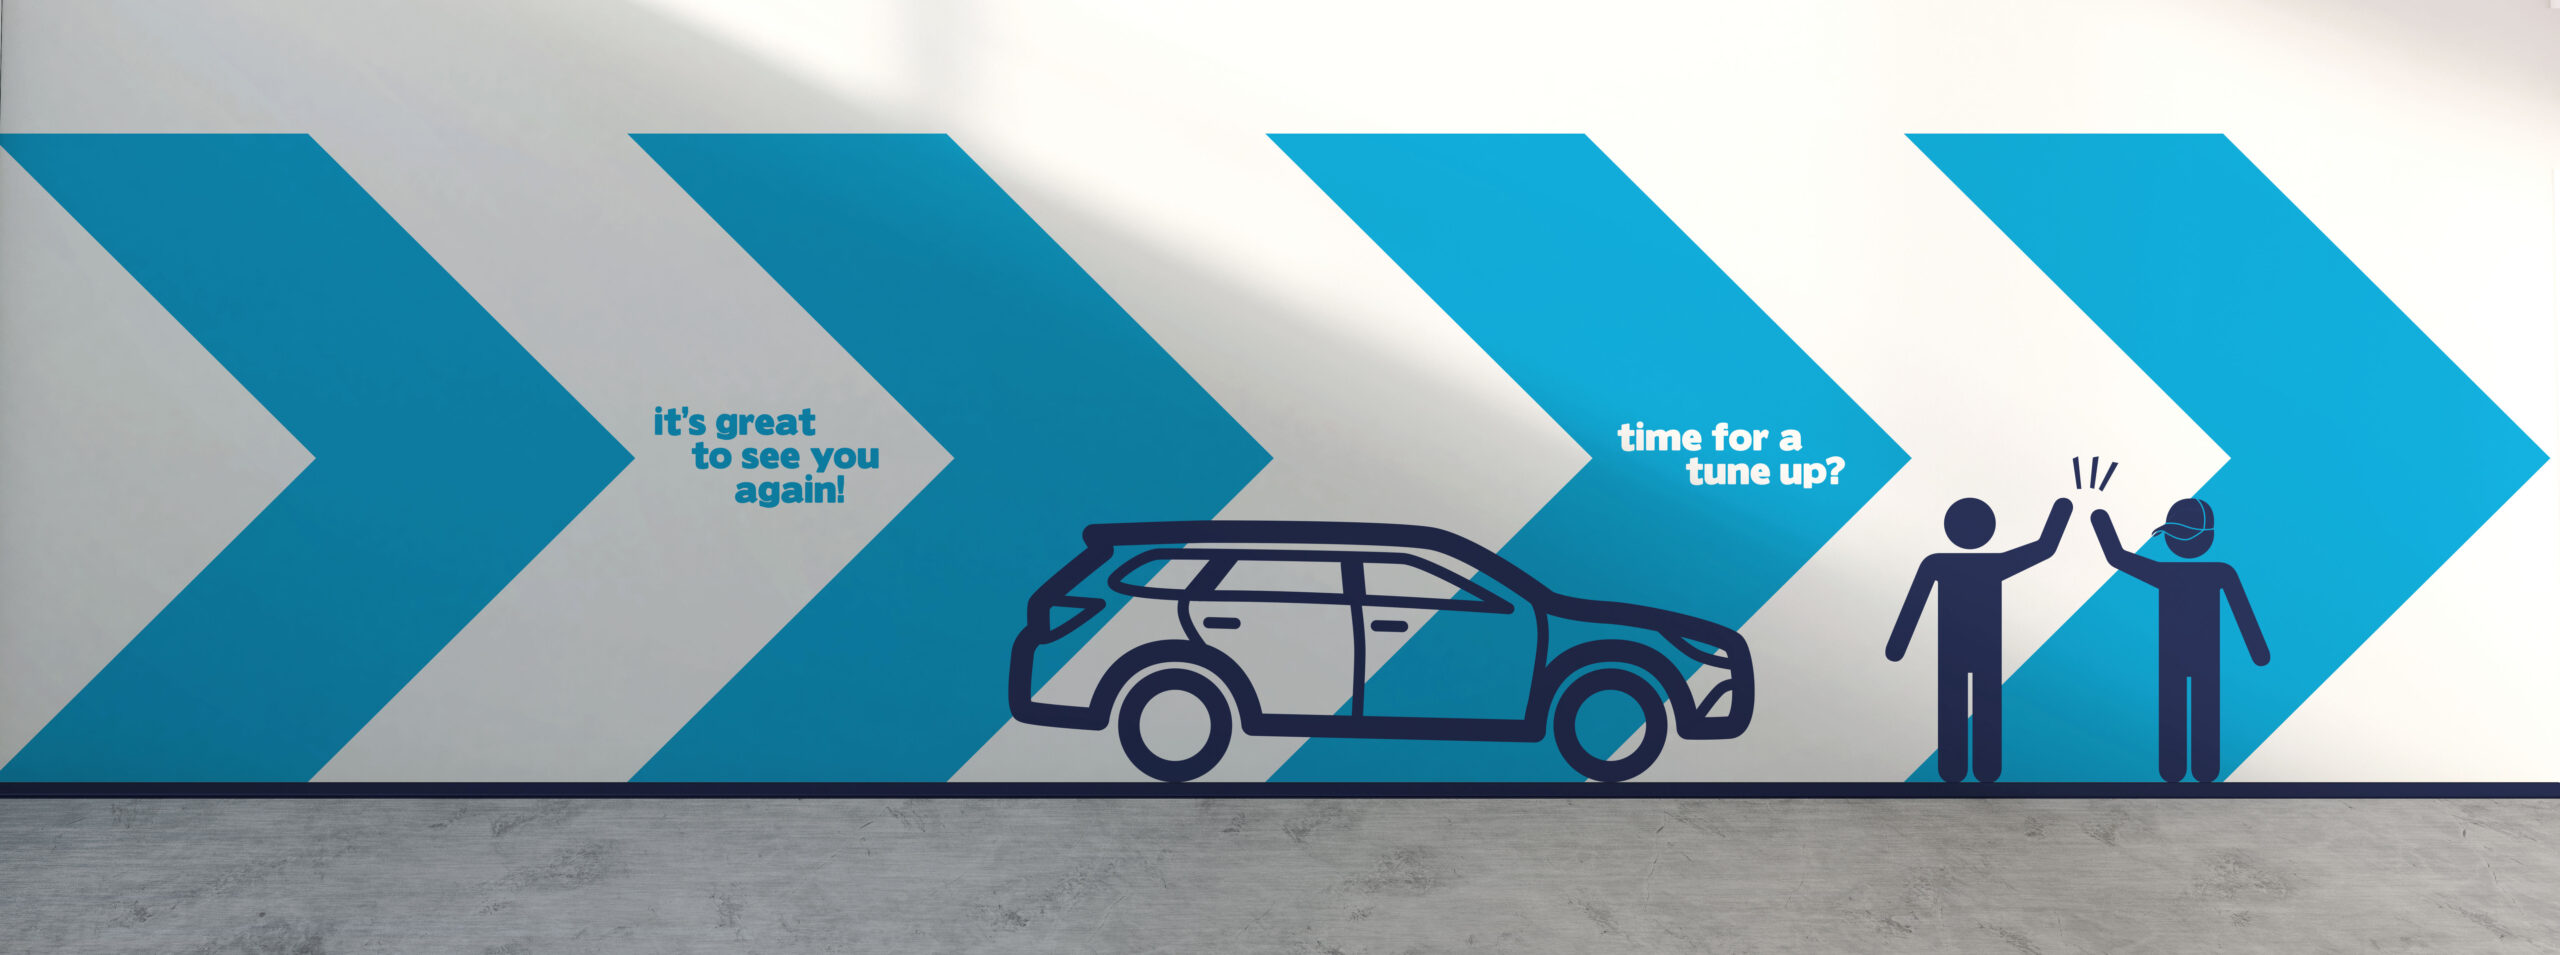 LudbrookAgency-Subaru-Environmental-Graphics-03b